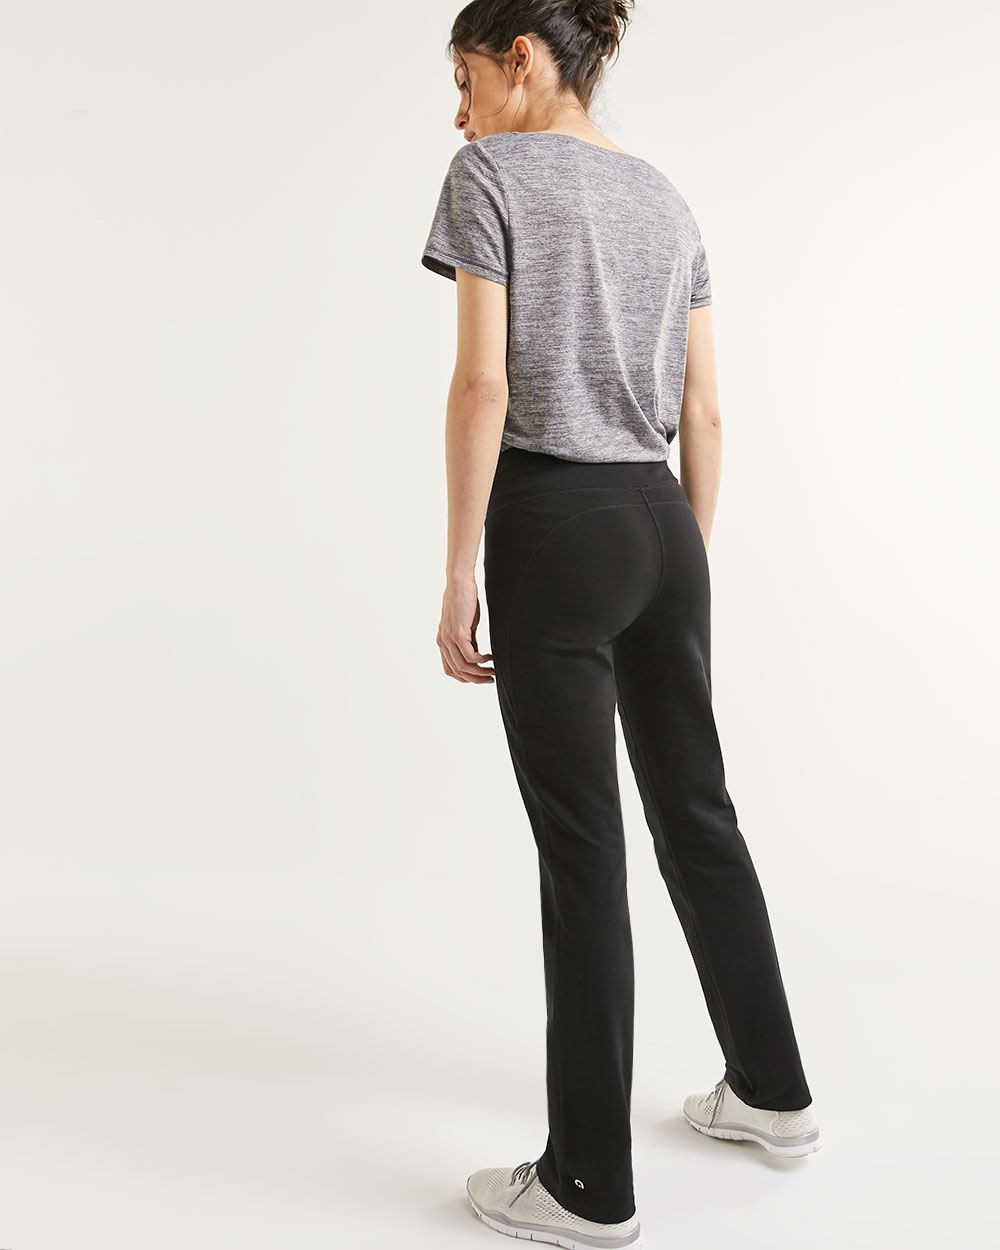 Straight Sculptor Pants Hyba